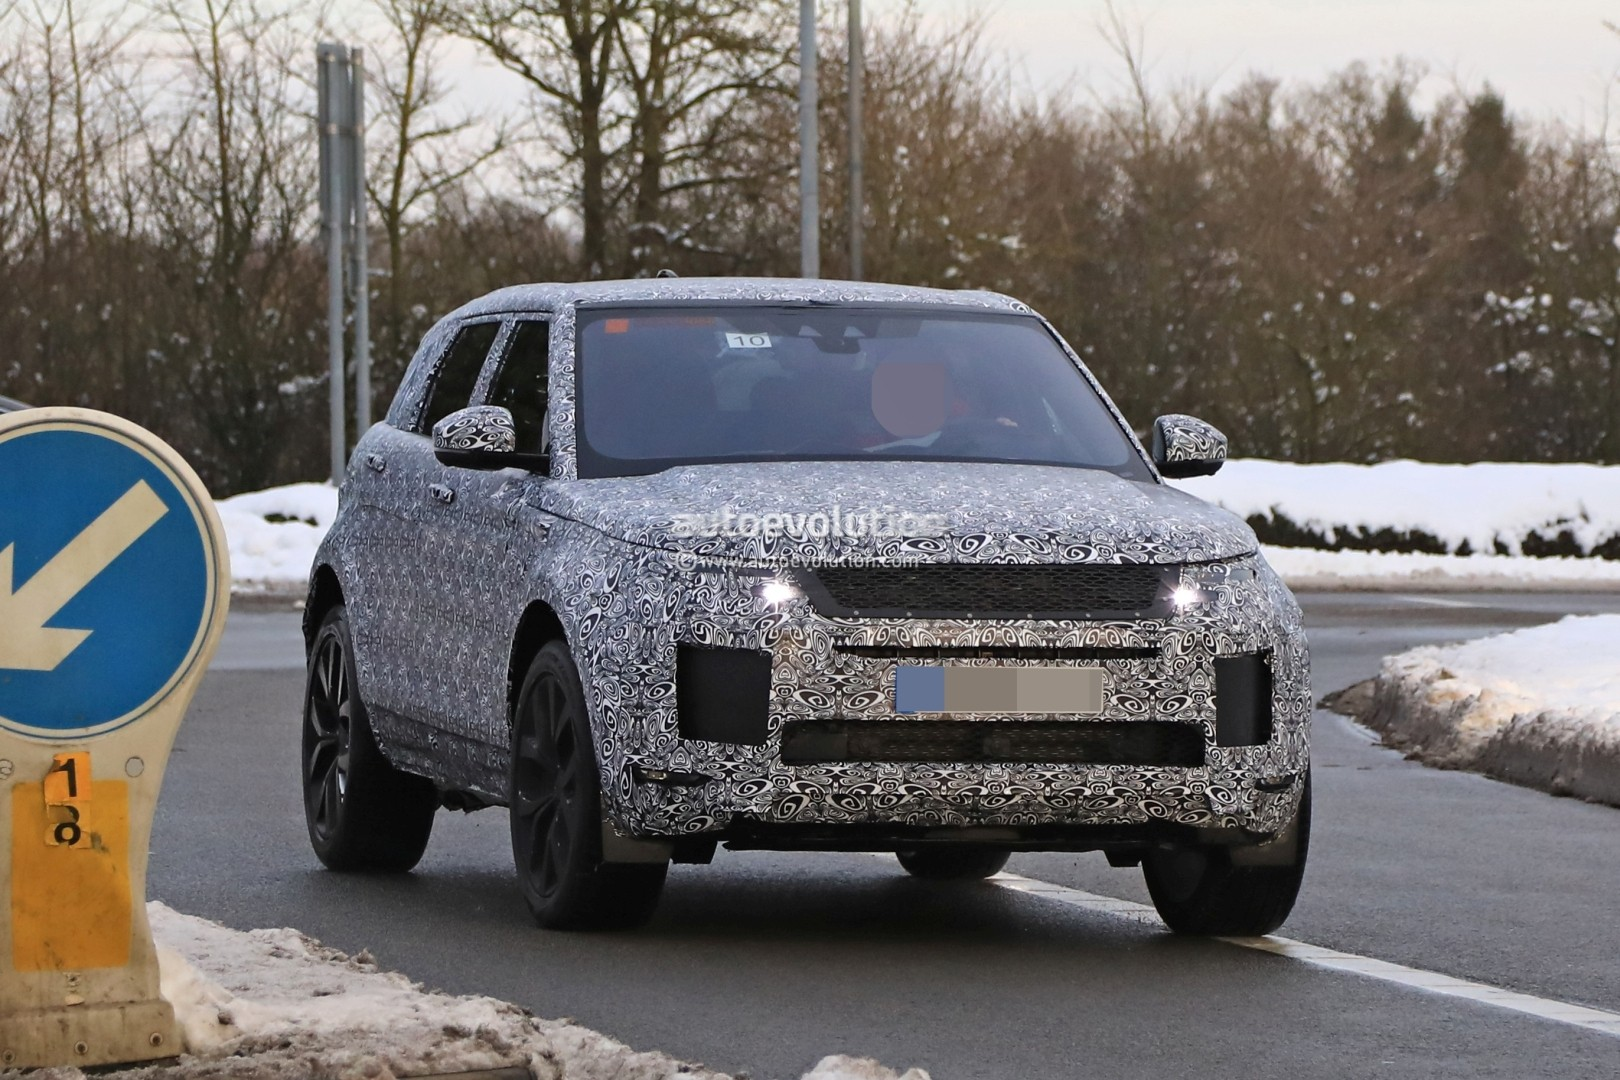 Spyshots 2019 Range Rover Evoque Has Production All Led Headlights